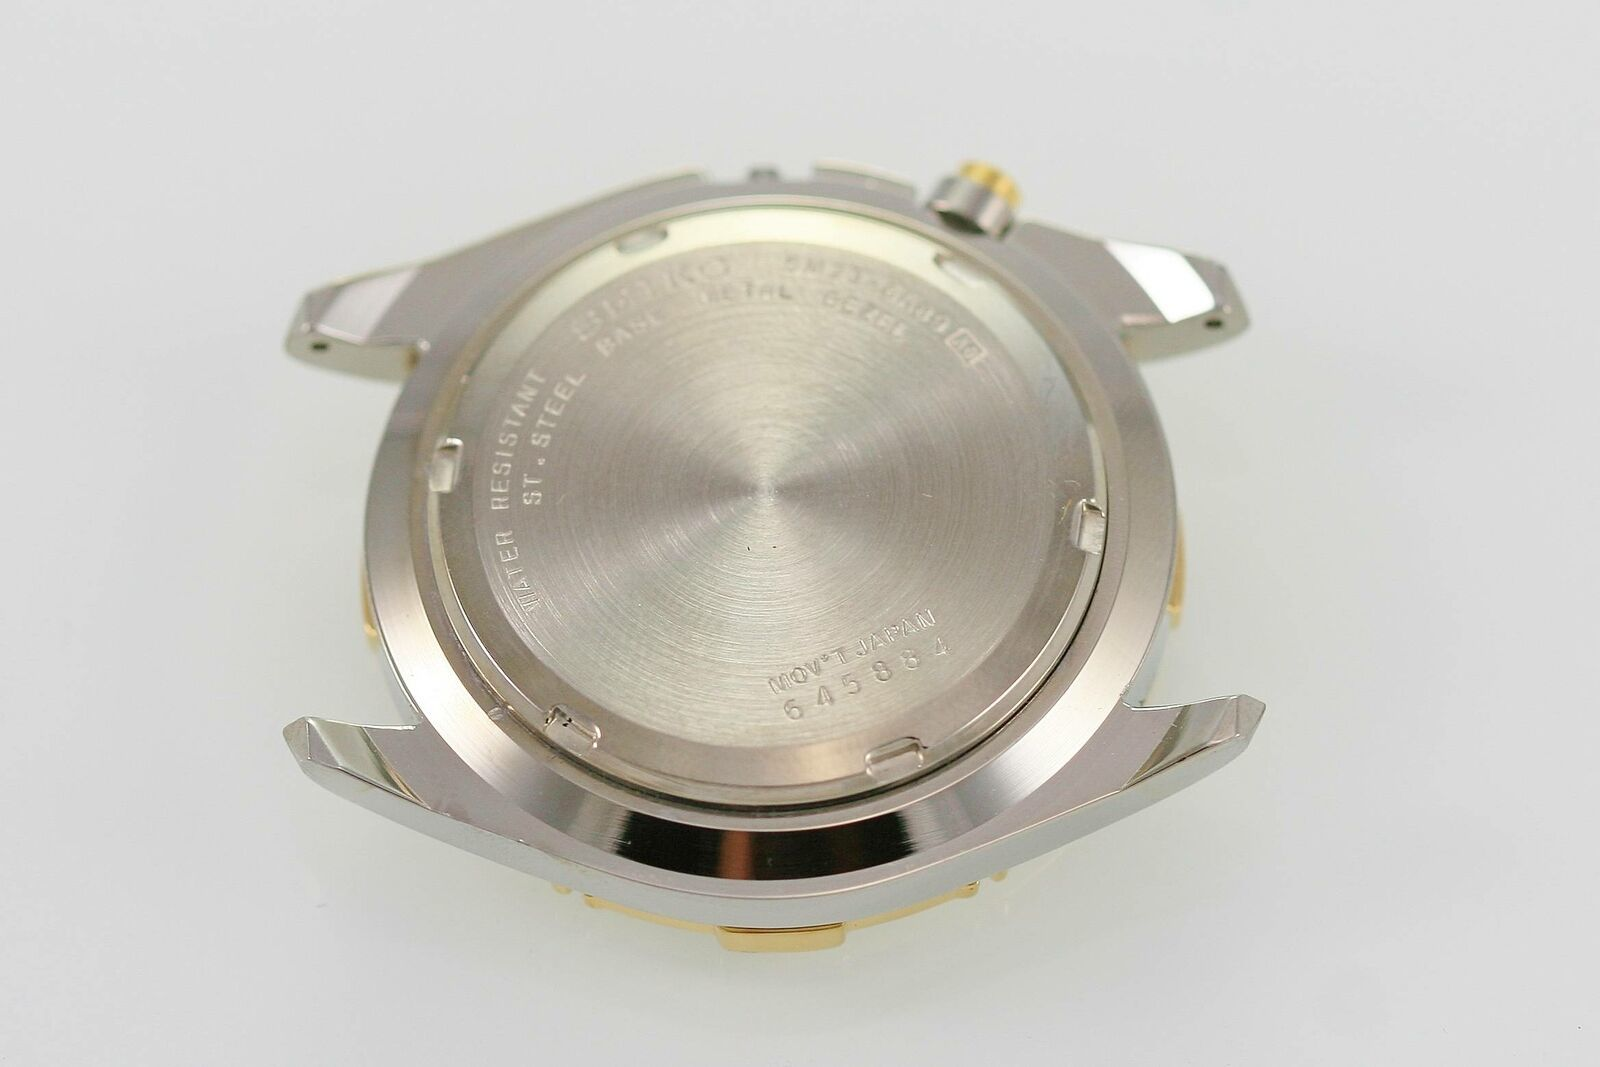 Brand New Seiko Kinetic Men's Silver Gold Watch Case Stainless 5M23 MVT